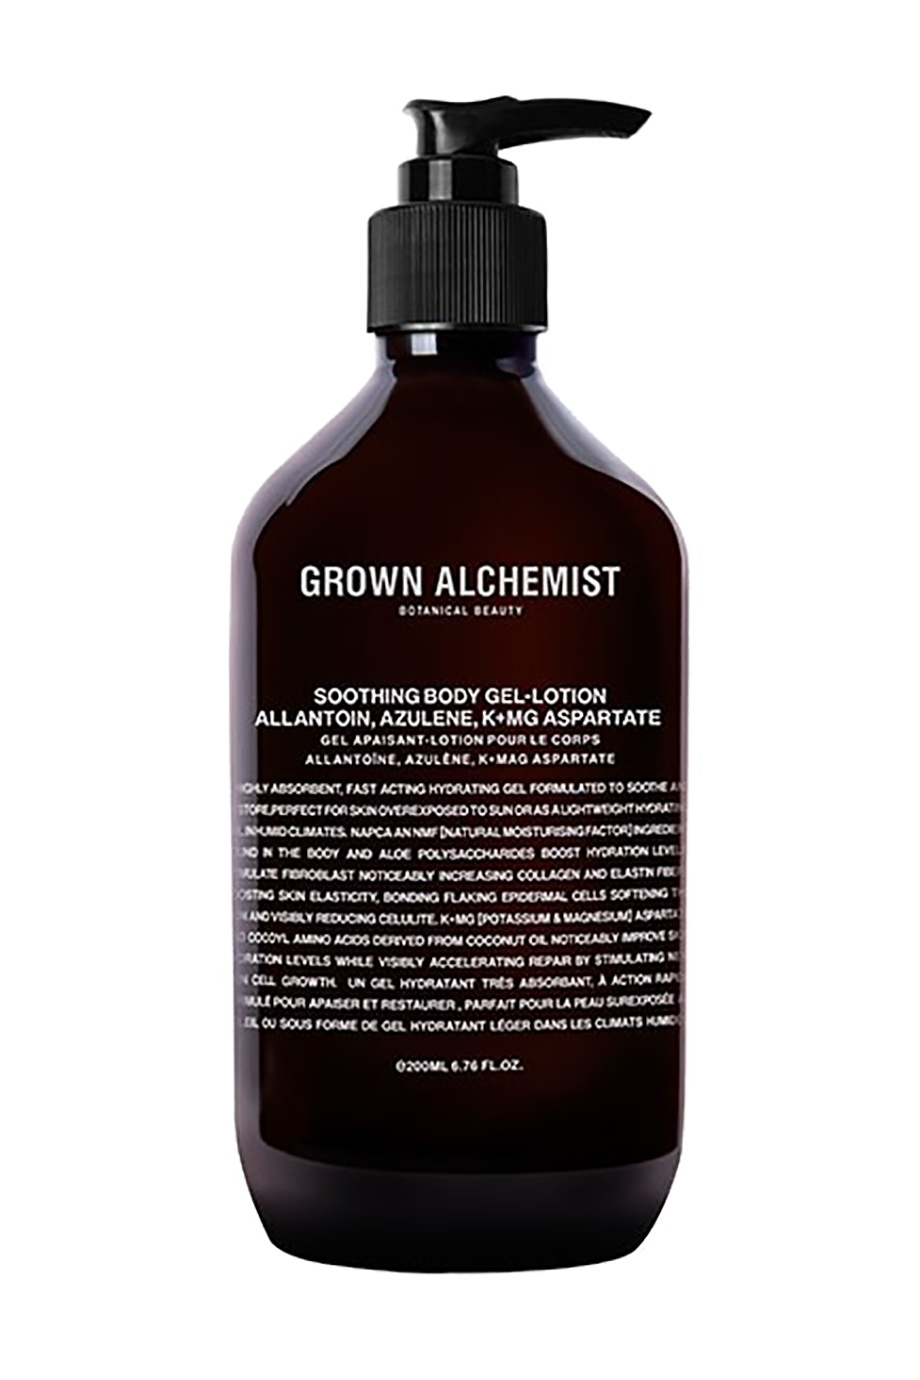 Восстанавливающий гель для тела, 200 ml Grown Alchemist (фото)